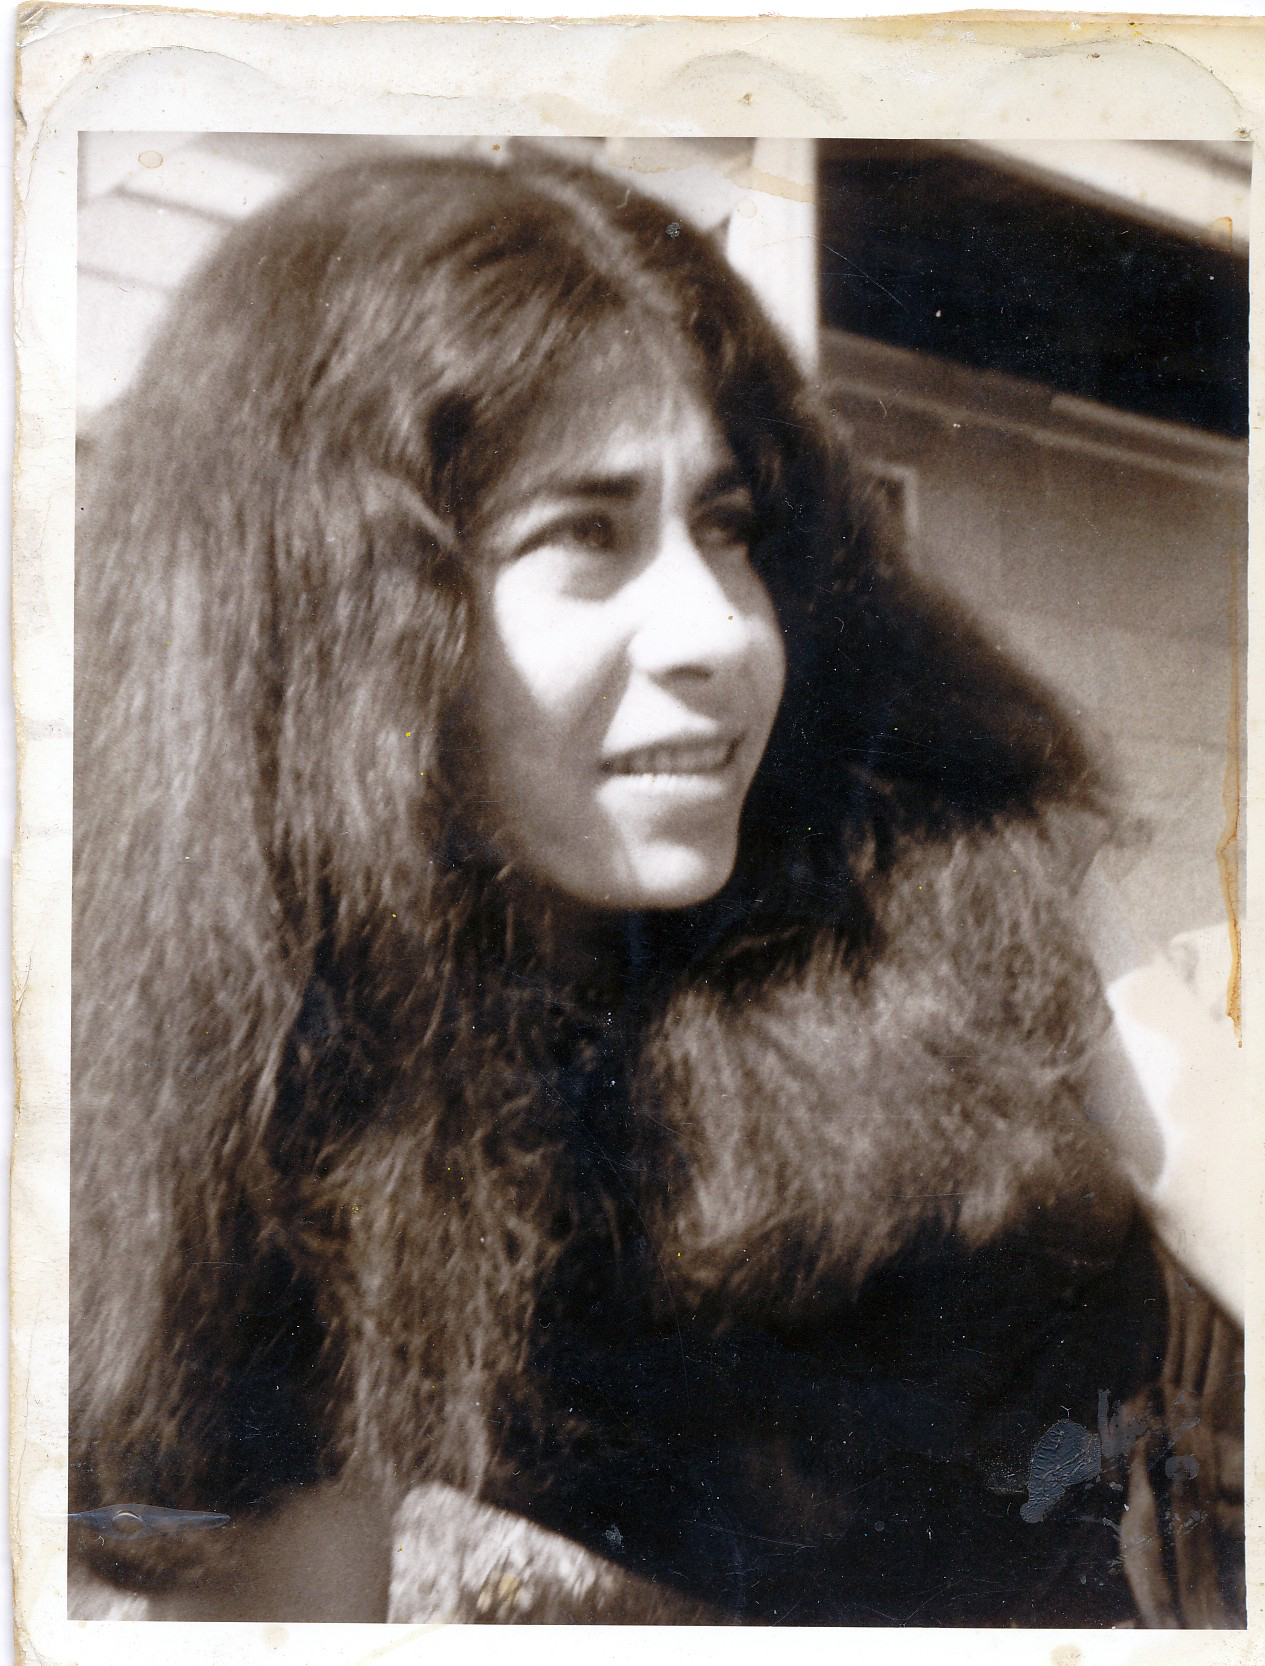 head and shoulders of young woman with mass of long dark hair